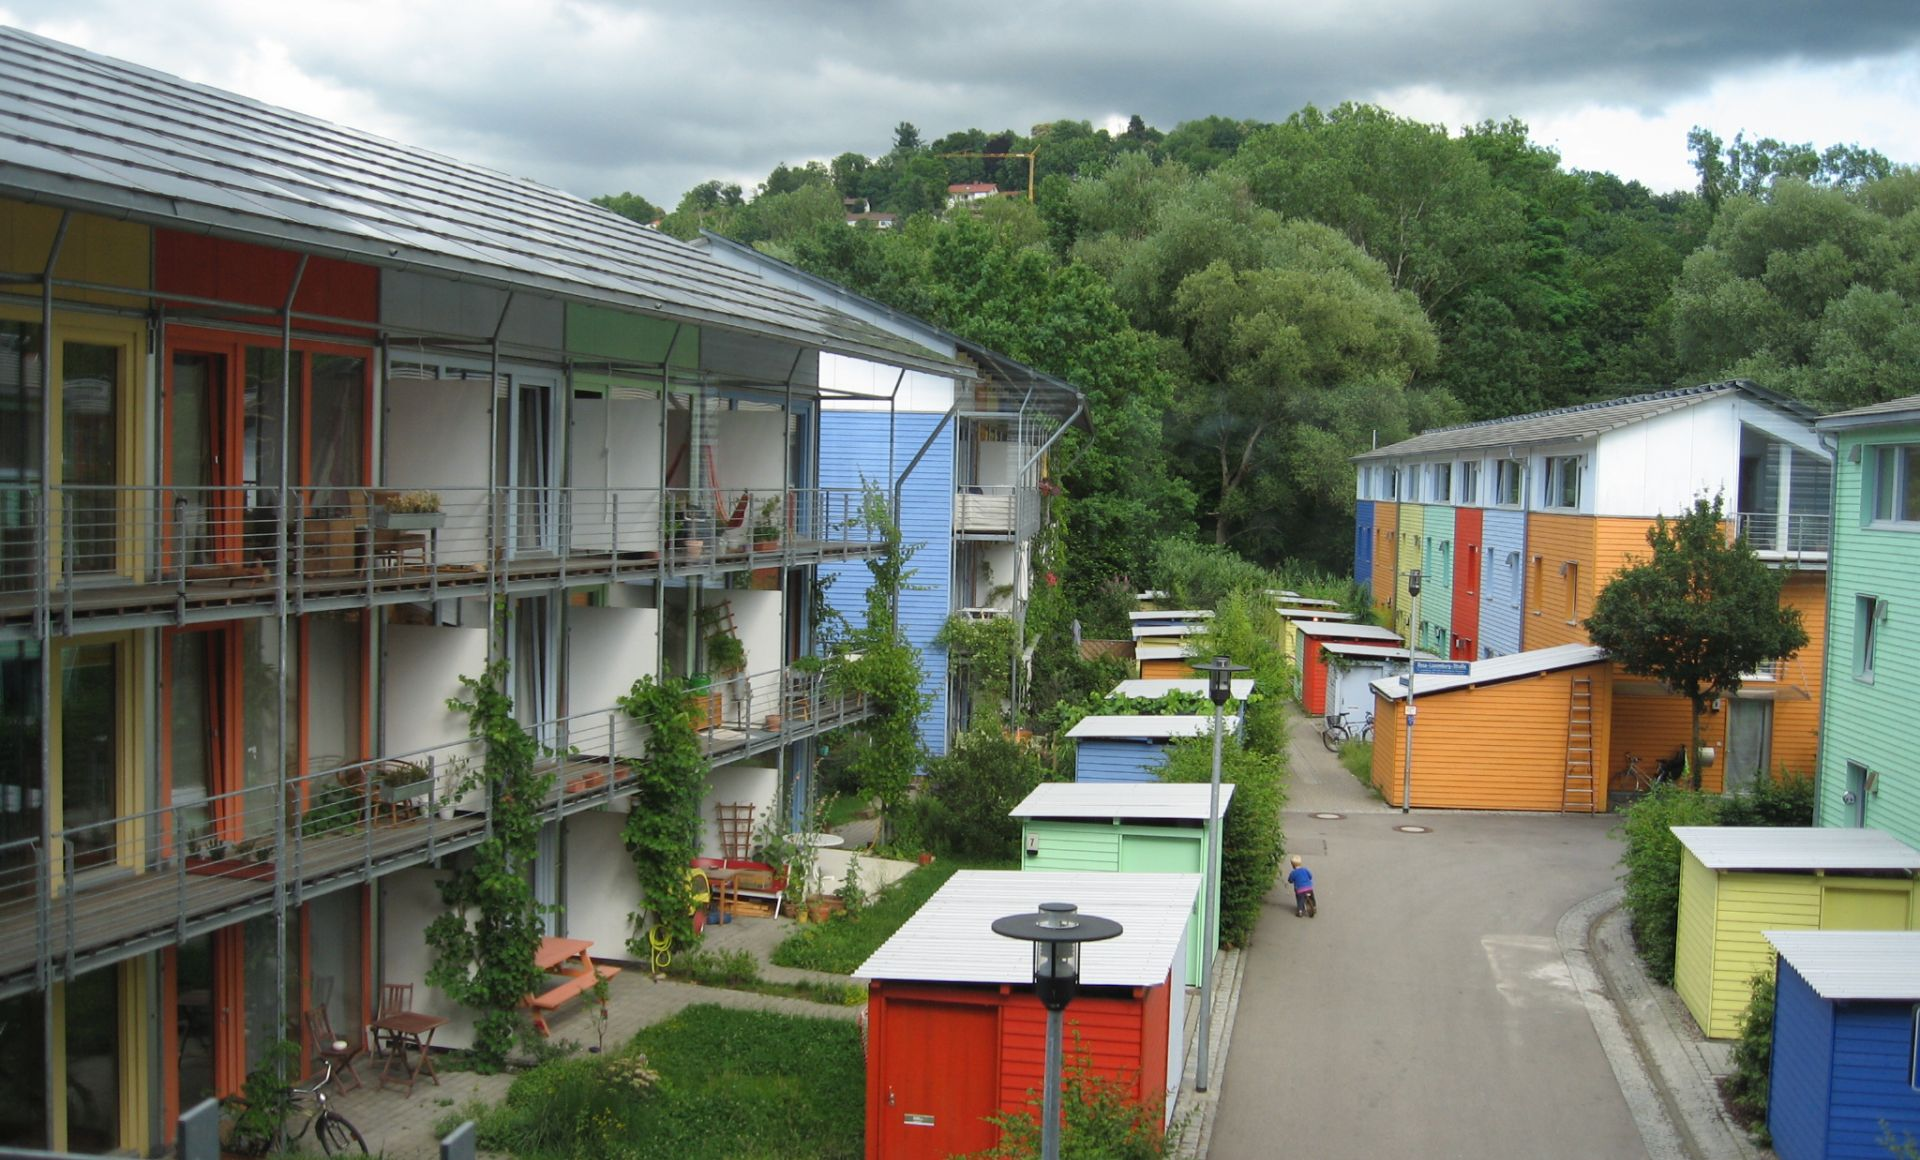 passive house homes in Freiburg with solar panels on top and child on a bike in front